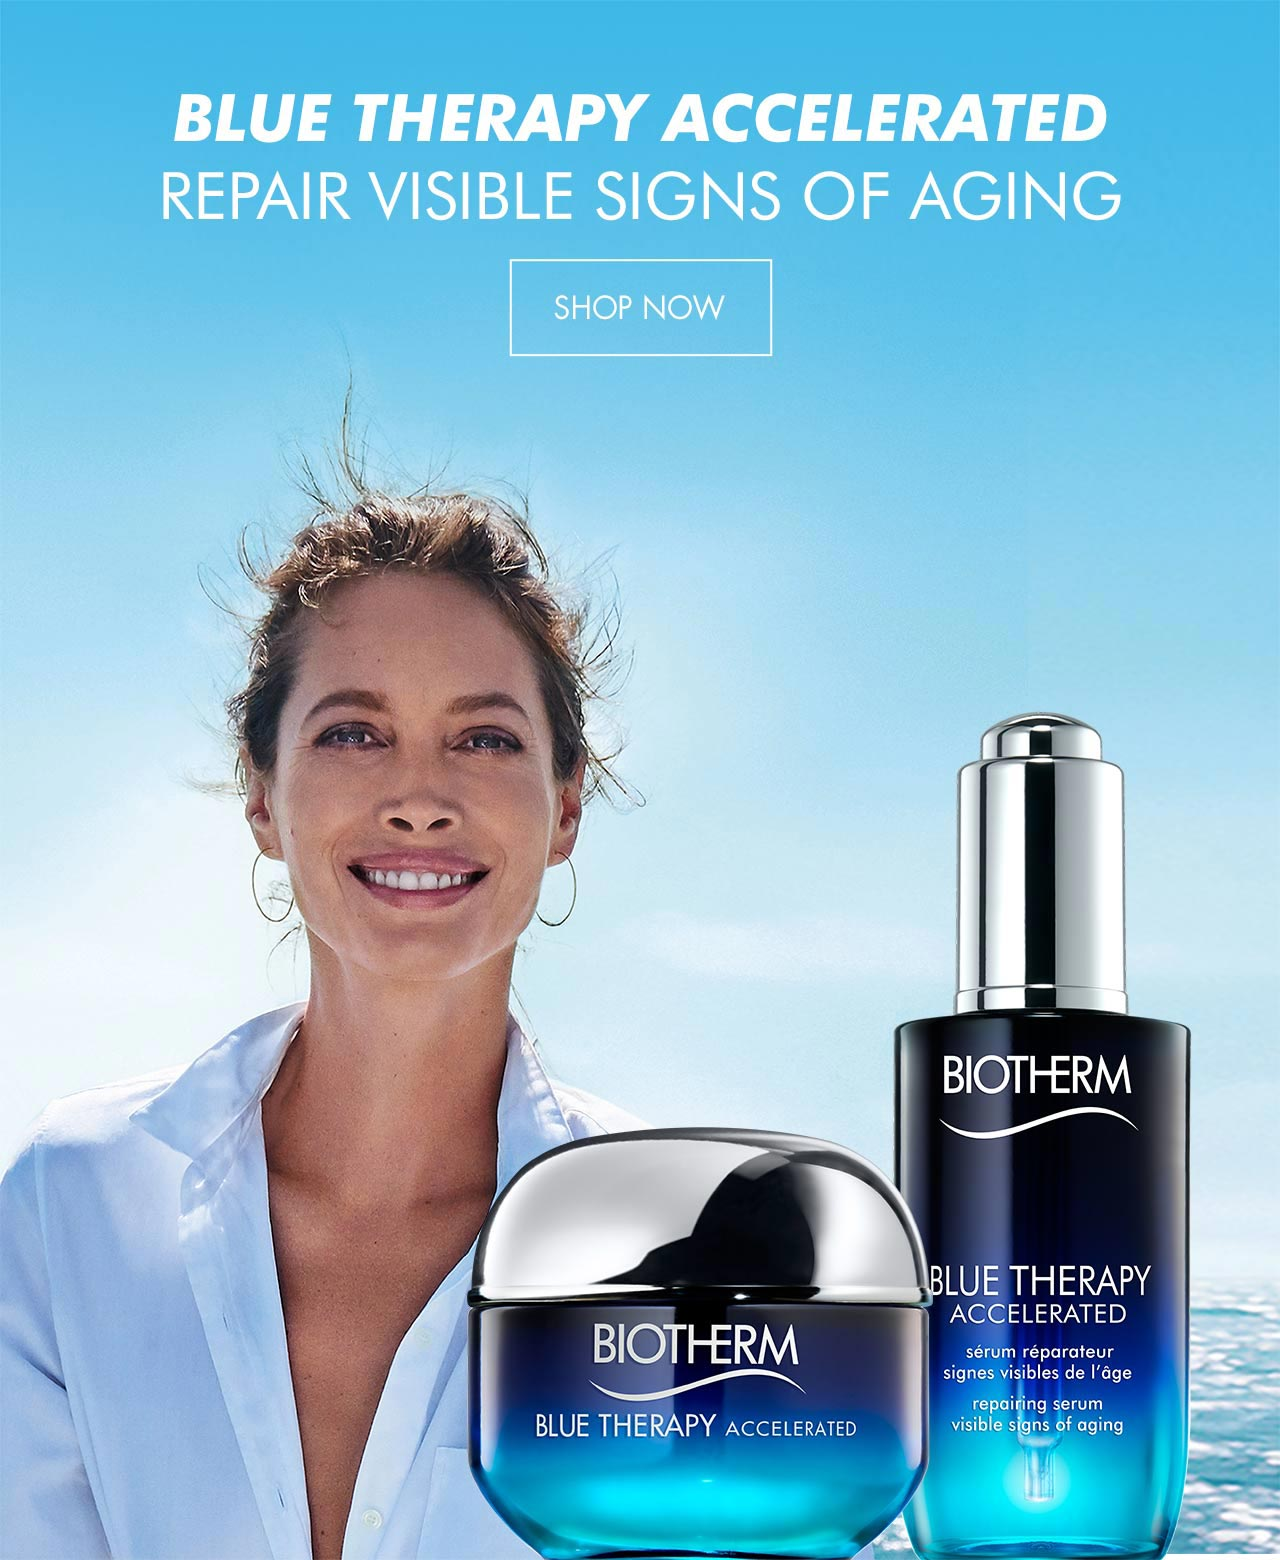 Repair visible signs of aging